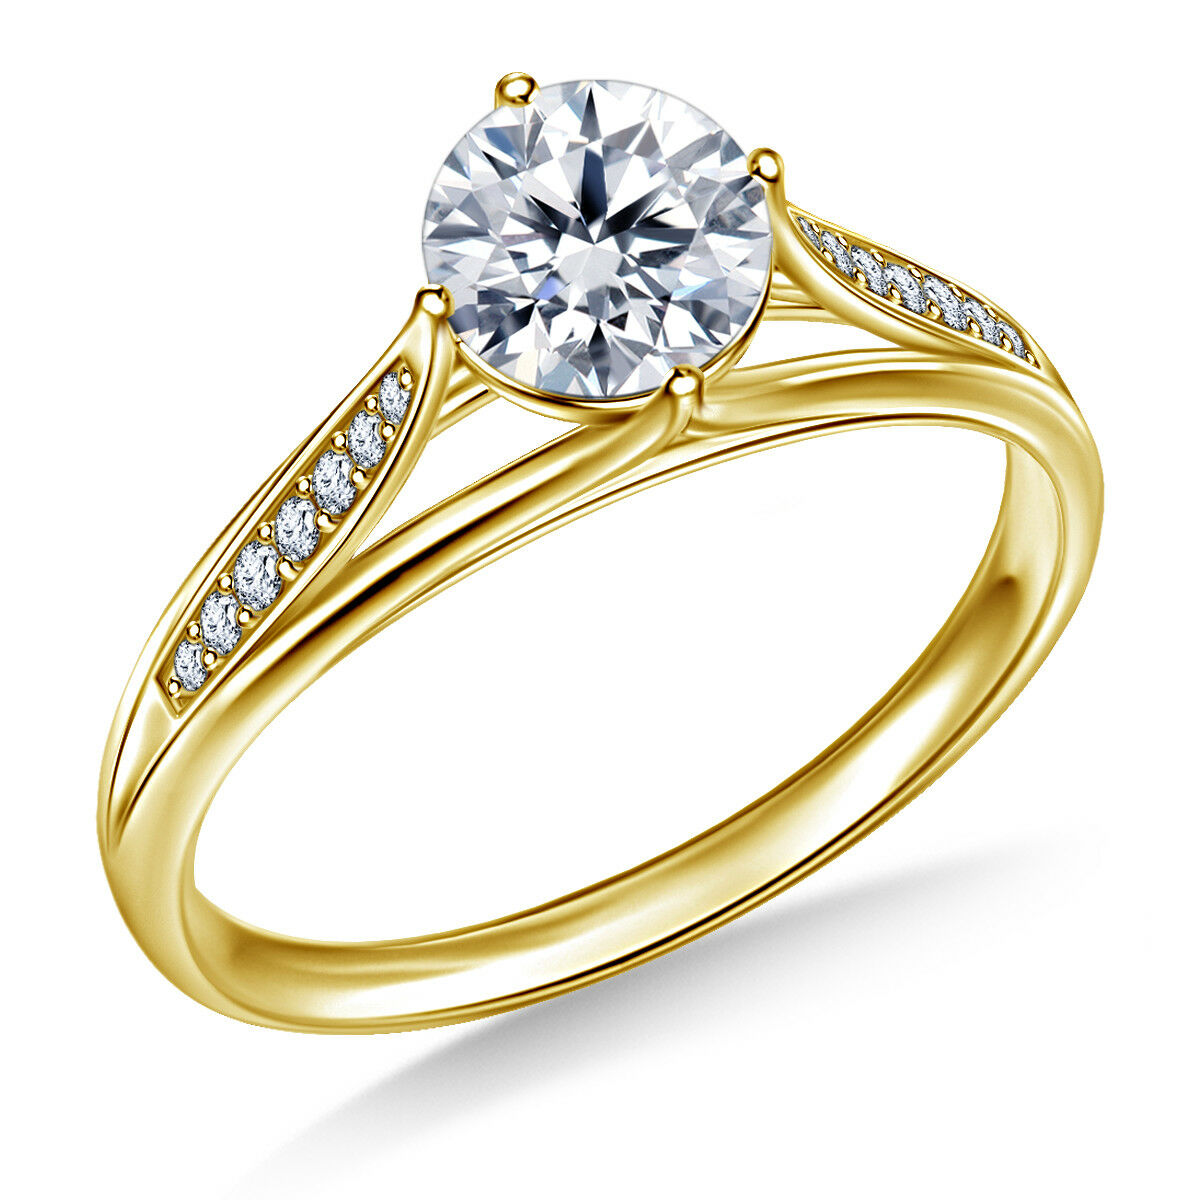 0.80 Ct Round Cut Solitaire Diamond Engagement Ring 14K Yellow gold Rings Size 7